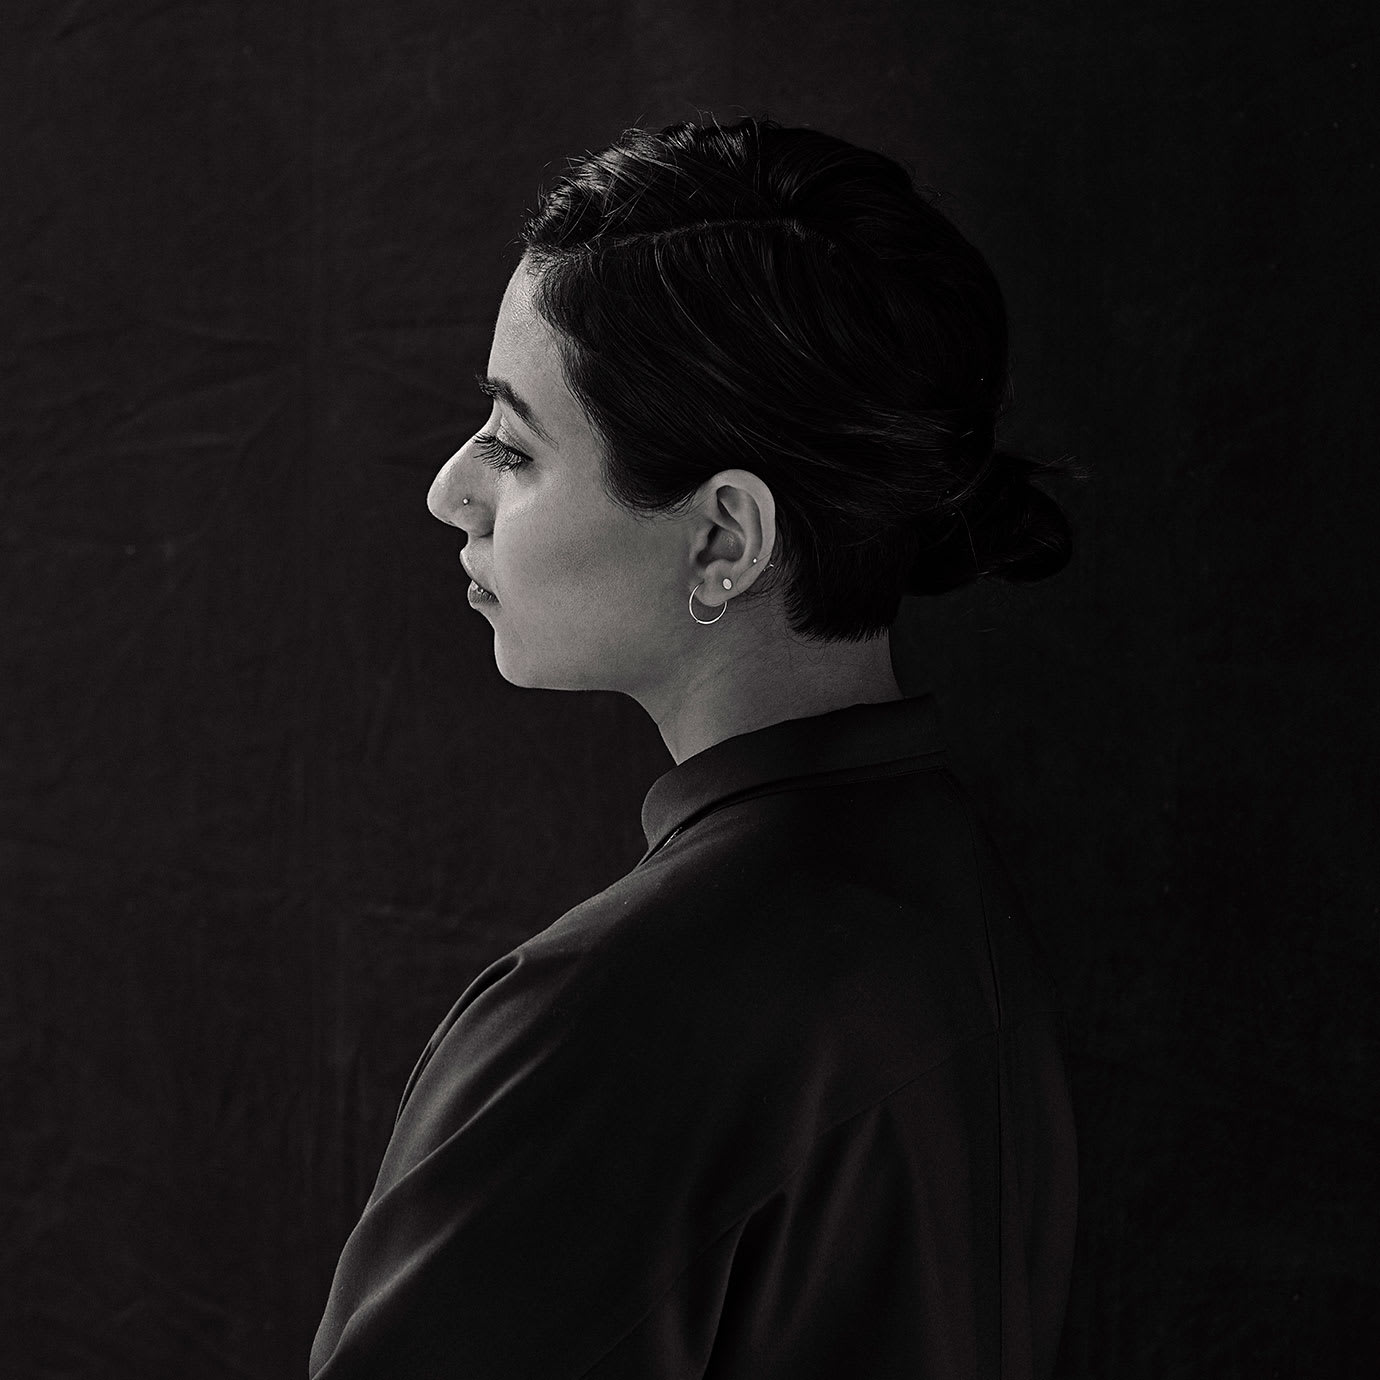 The back of a woman with the side of her head showing in profile.